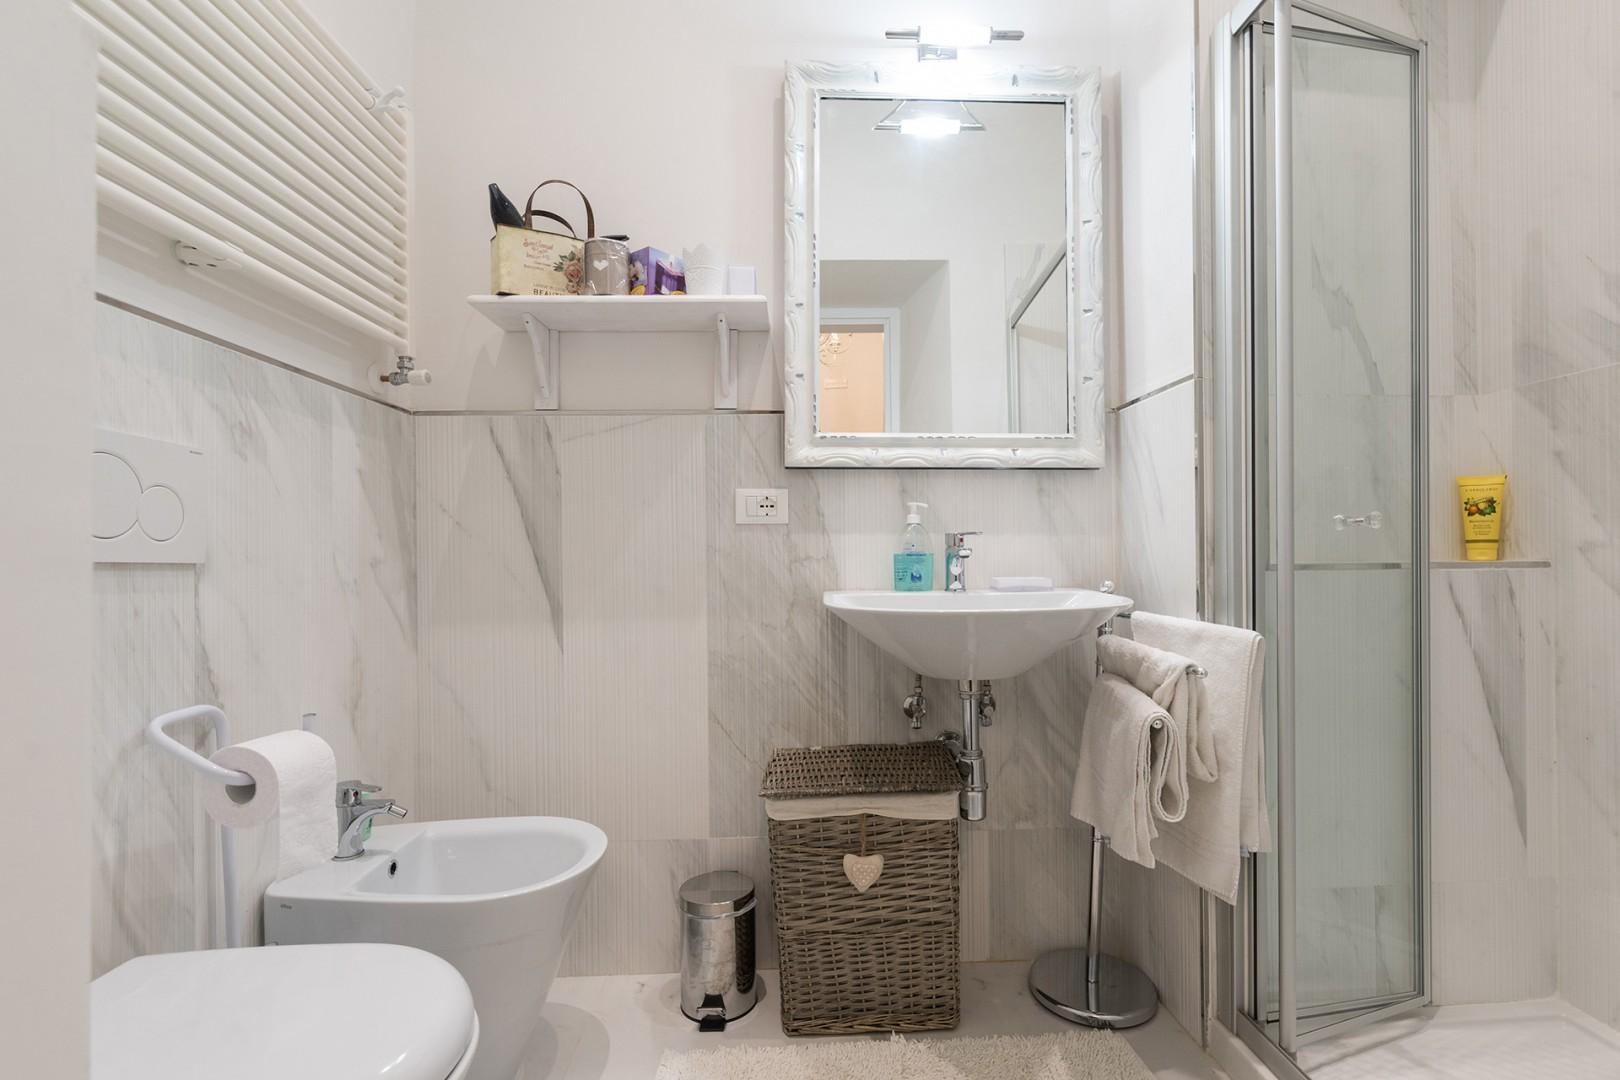 The marble-tiled bathroom is generously sized.